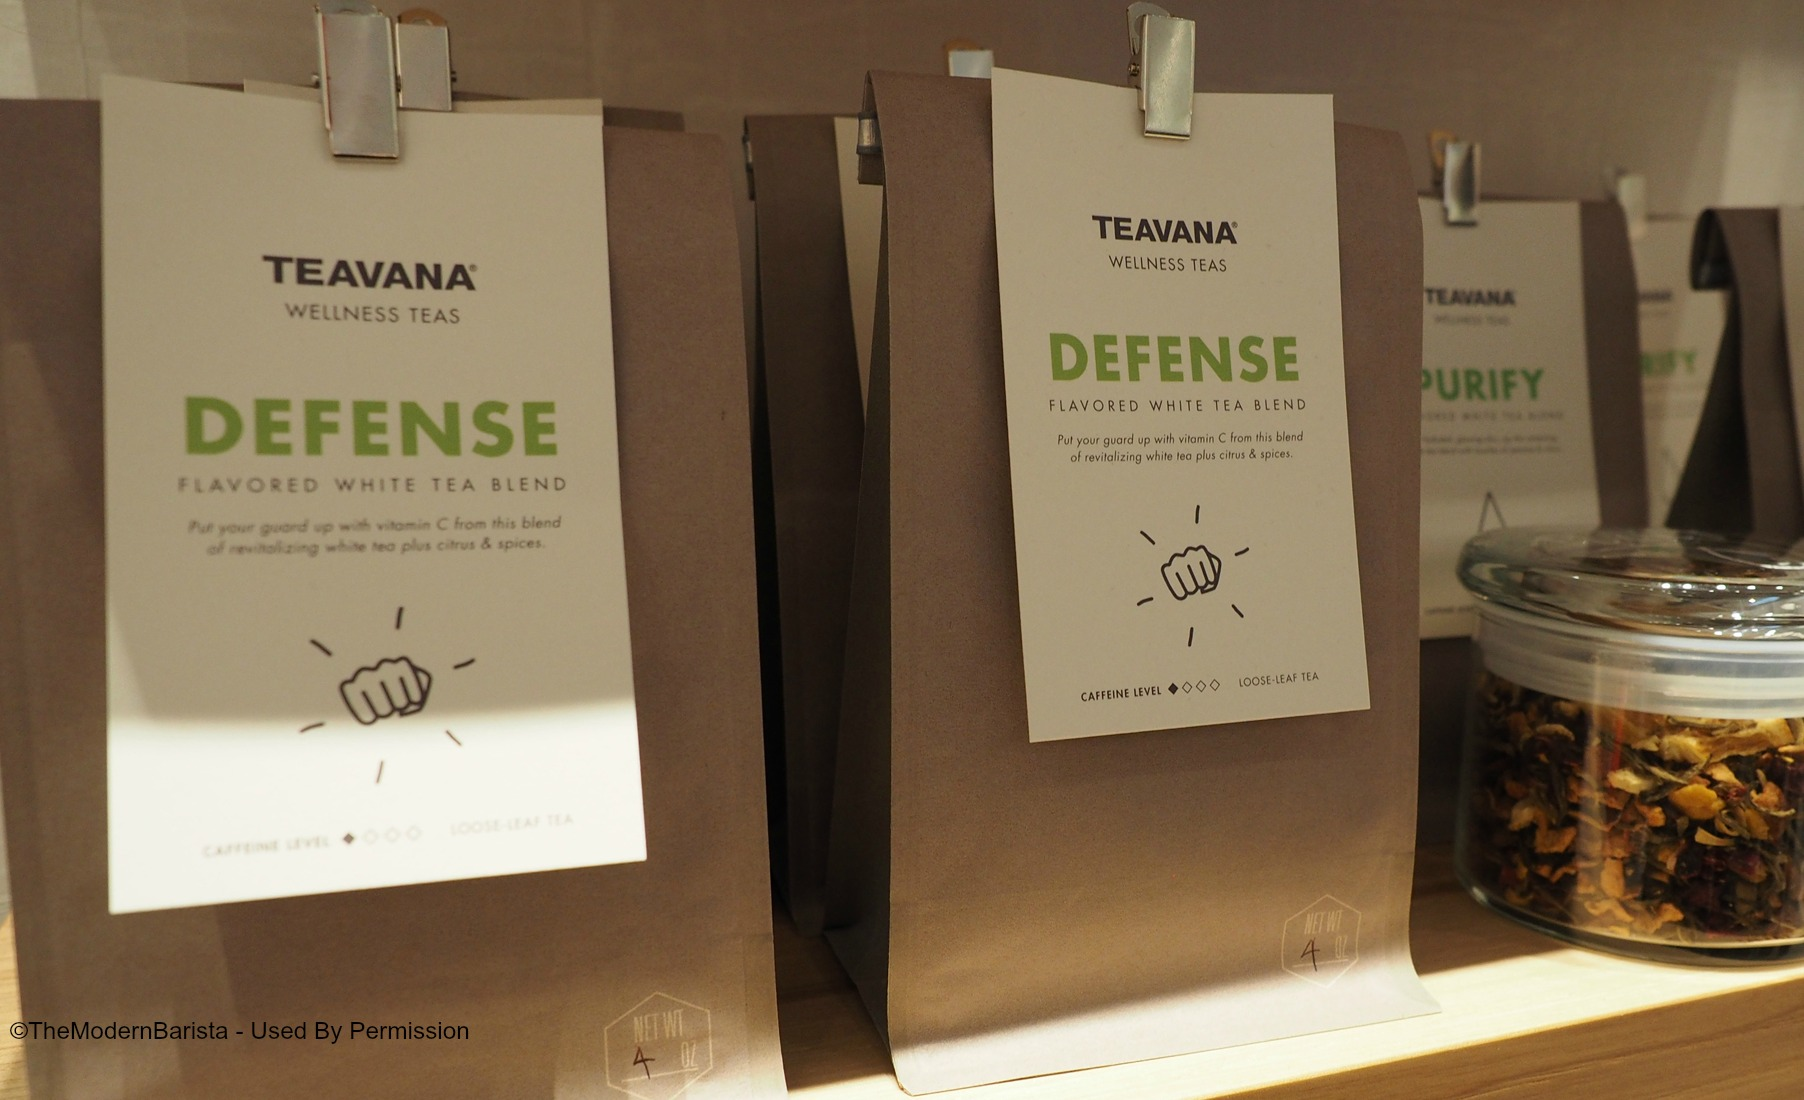 2 - 1 - teavana03 10Nov15 Defense Tea Teavana Southcenter.jpg